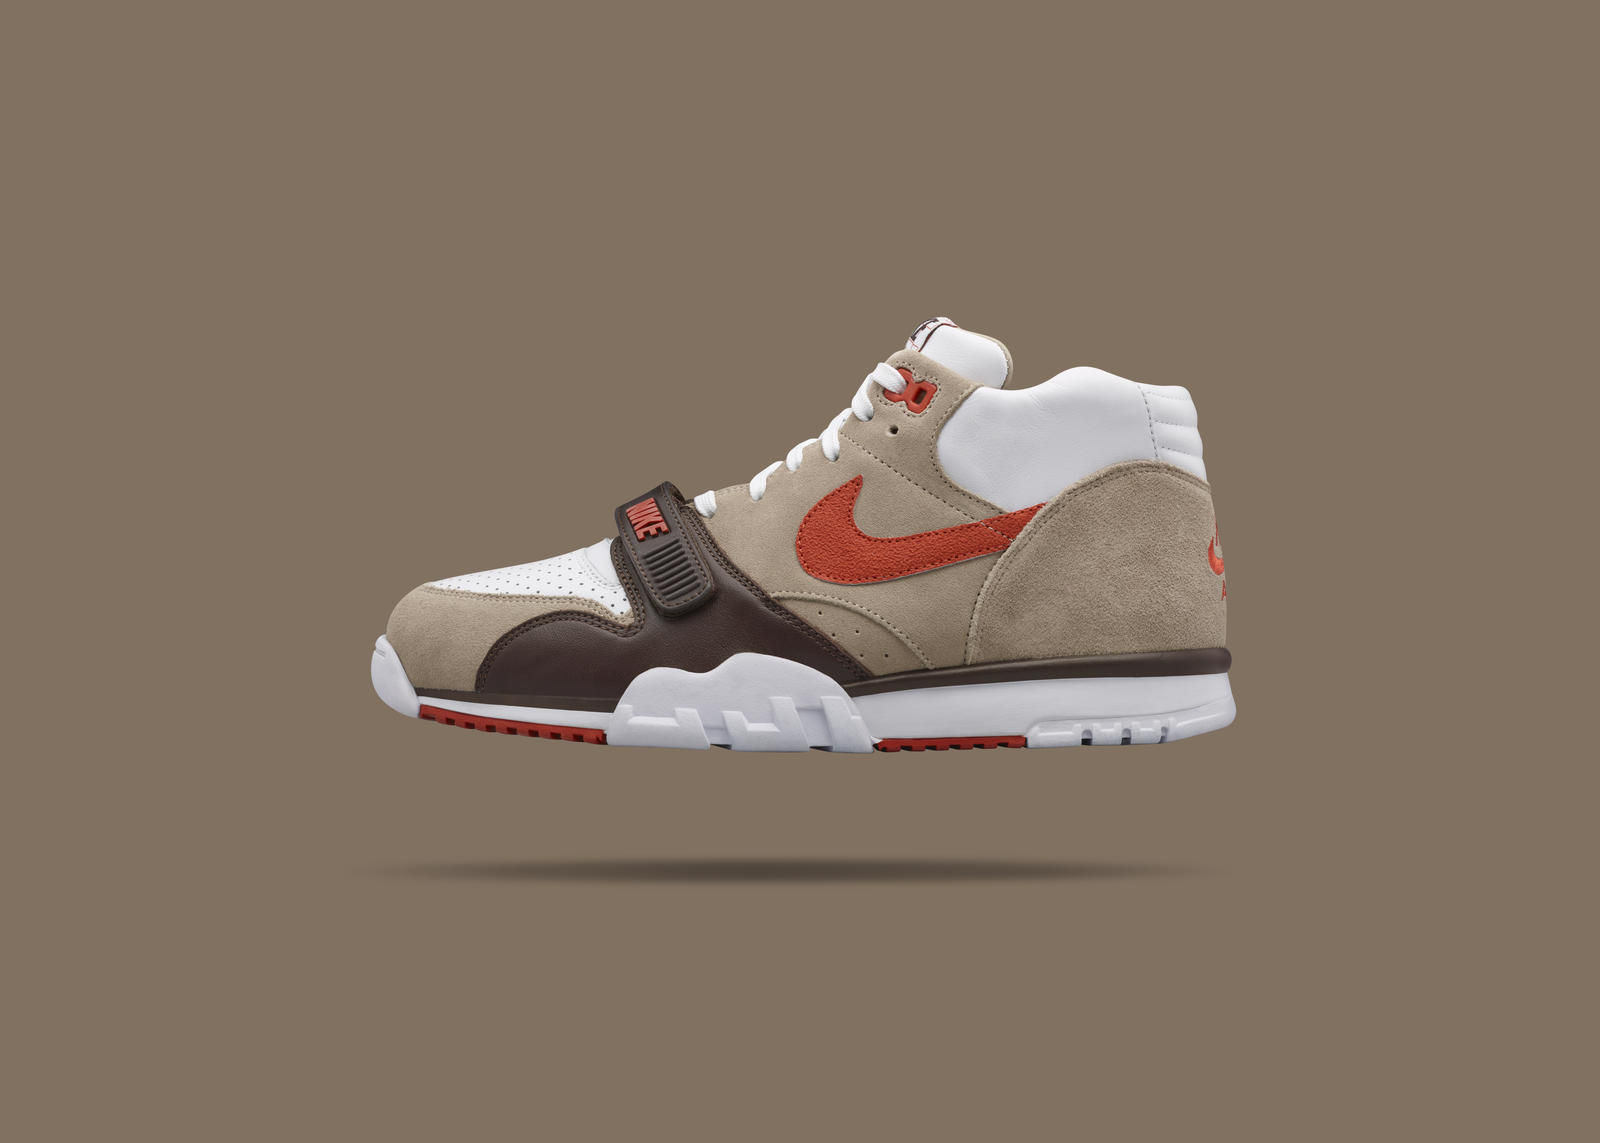 size 40 ff99d cea03 NikeCourt-Air-Trainer-1-Mid-Fragment-2. 806942 282 D PREM Float.  806942 282 F PREM Float